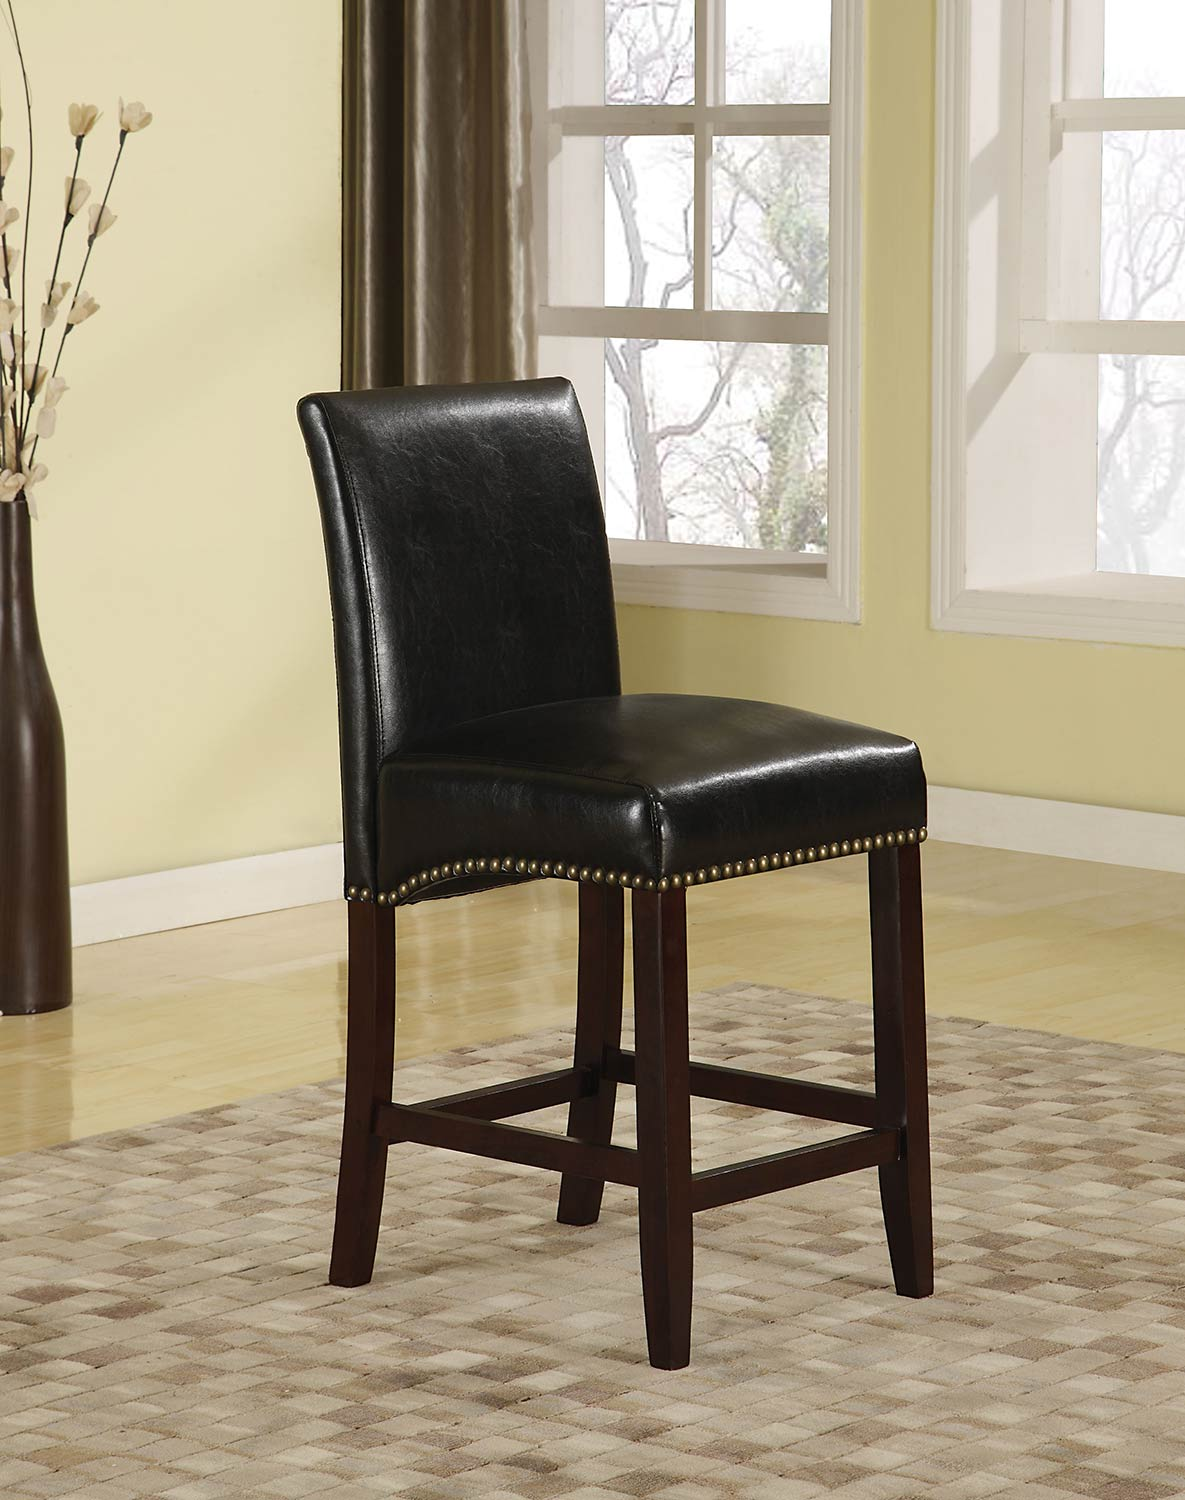 Acme Jakki Counter Height Chair - Black Vinyl